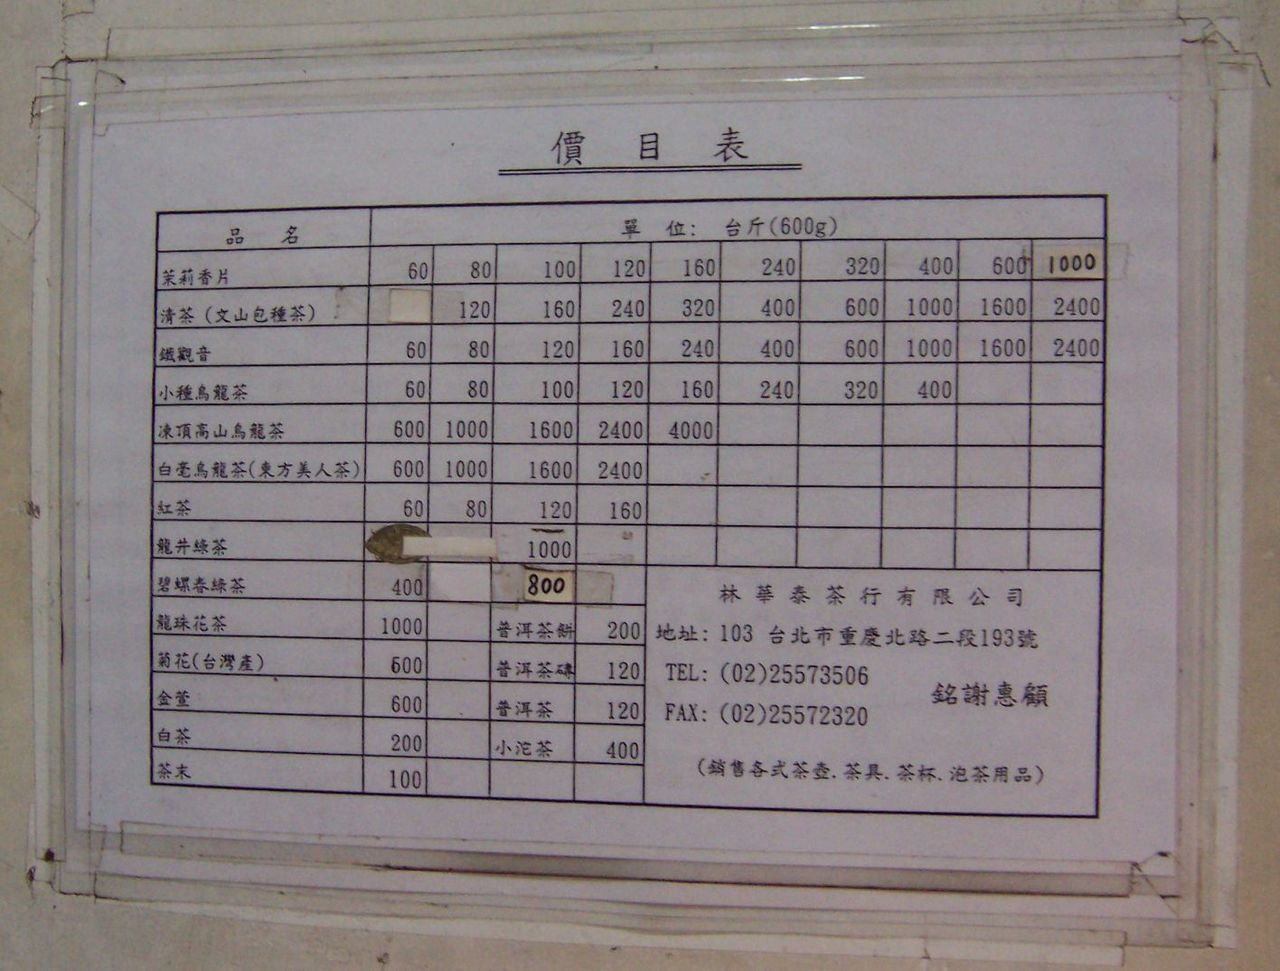 Lin Hua Tai Price table